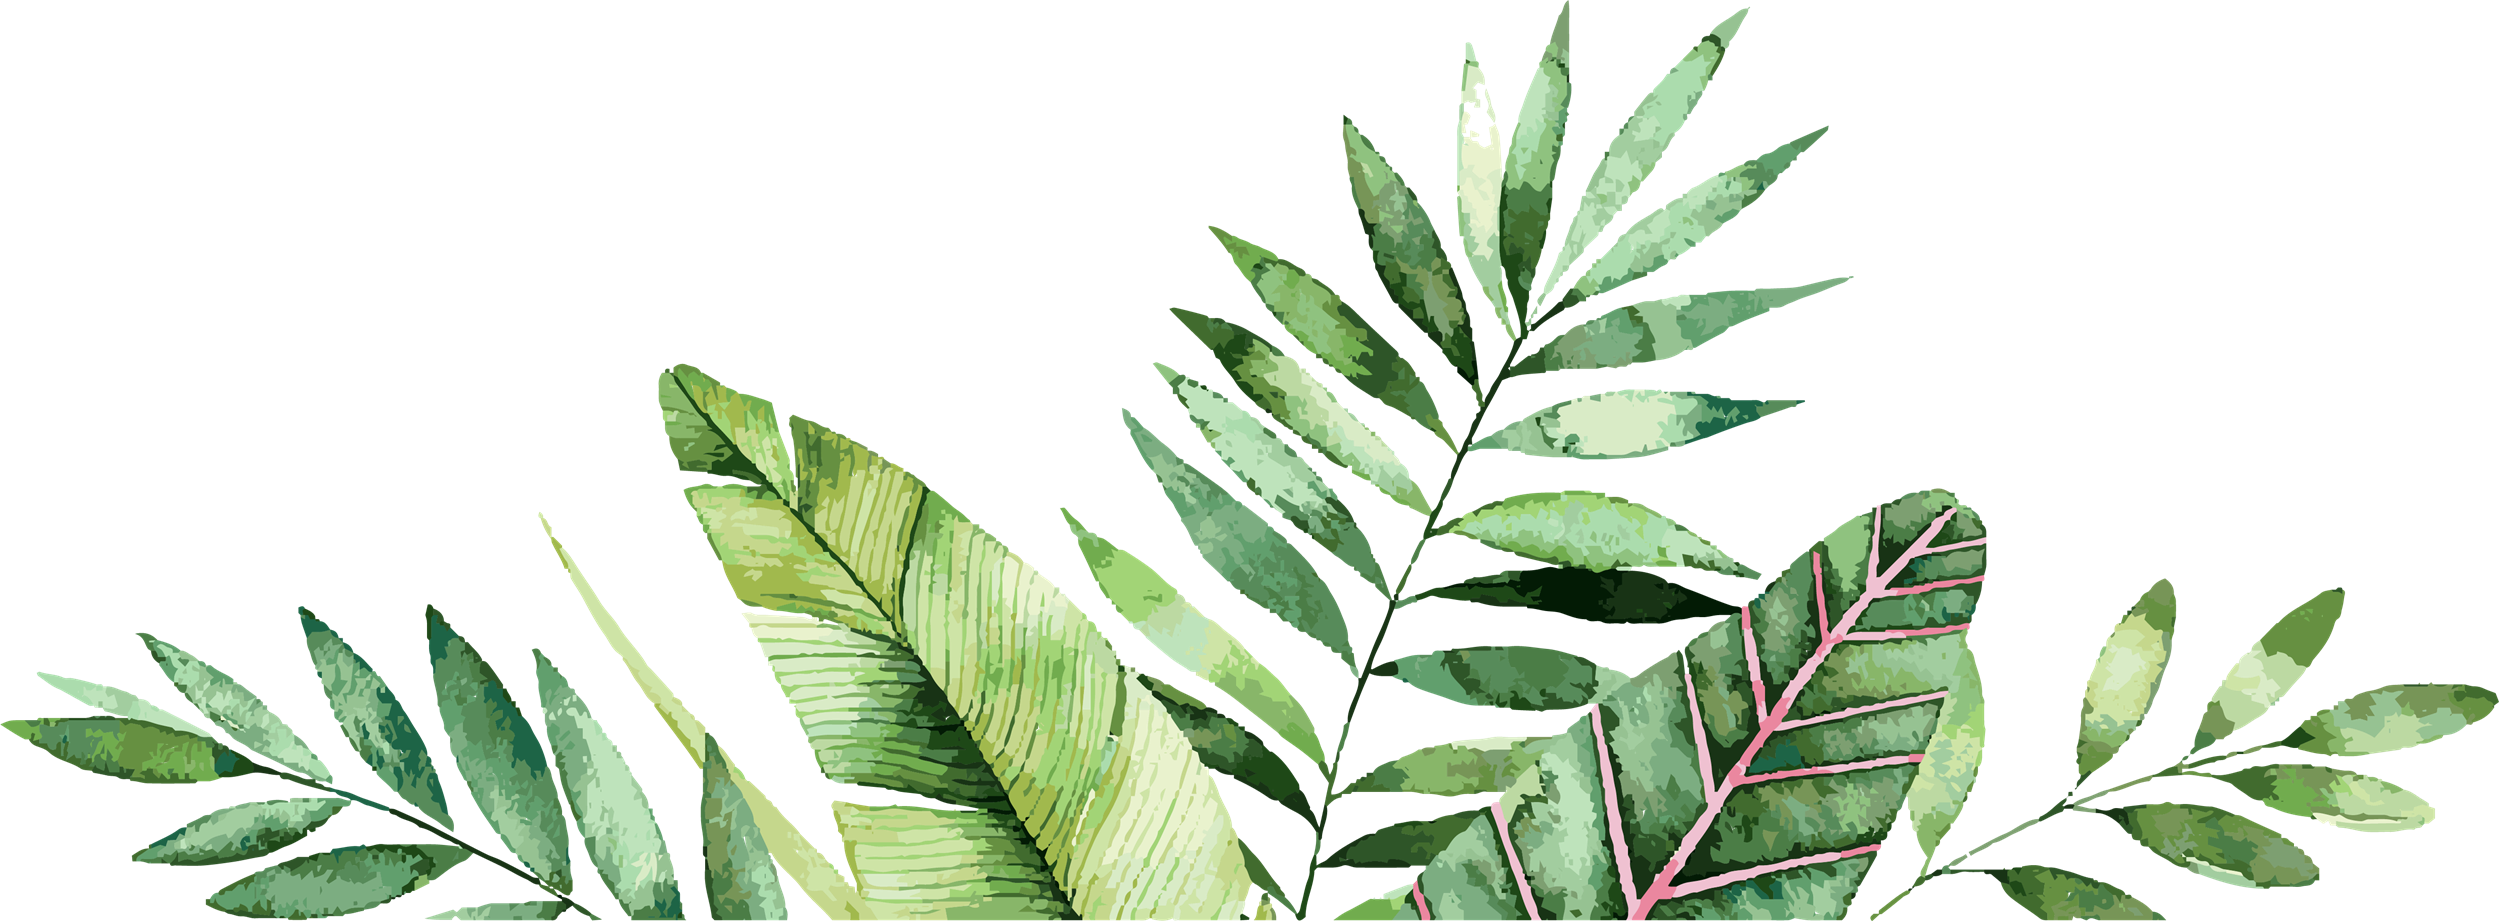 palm leaves graphic